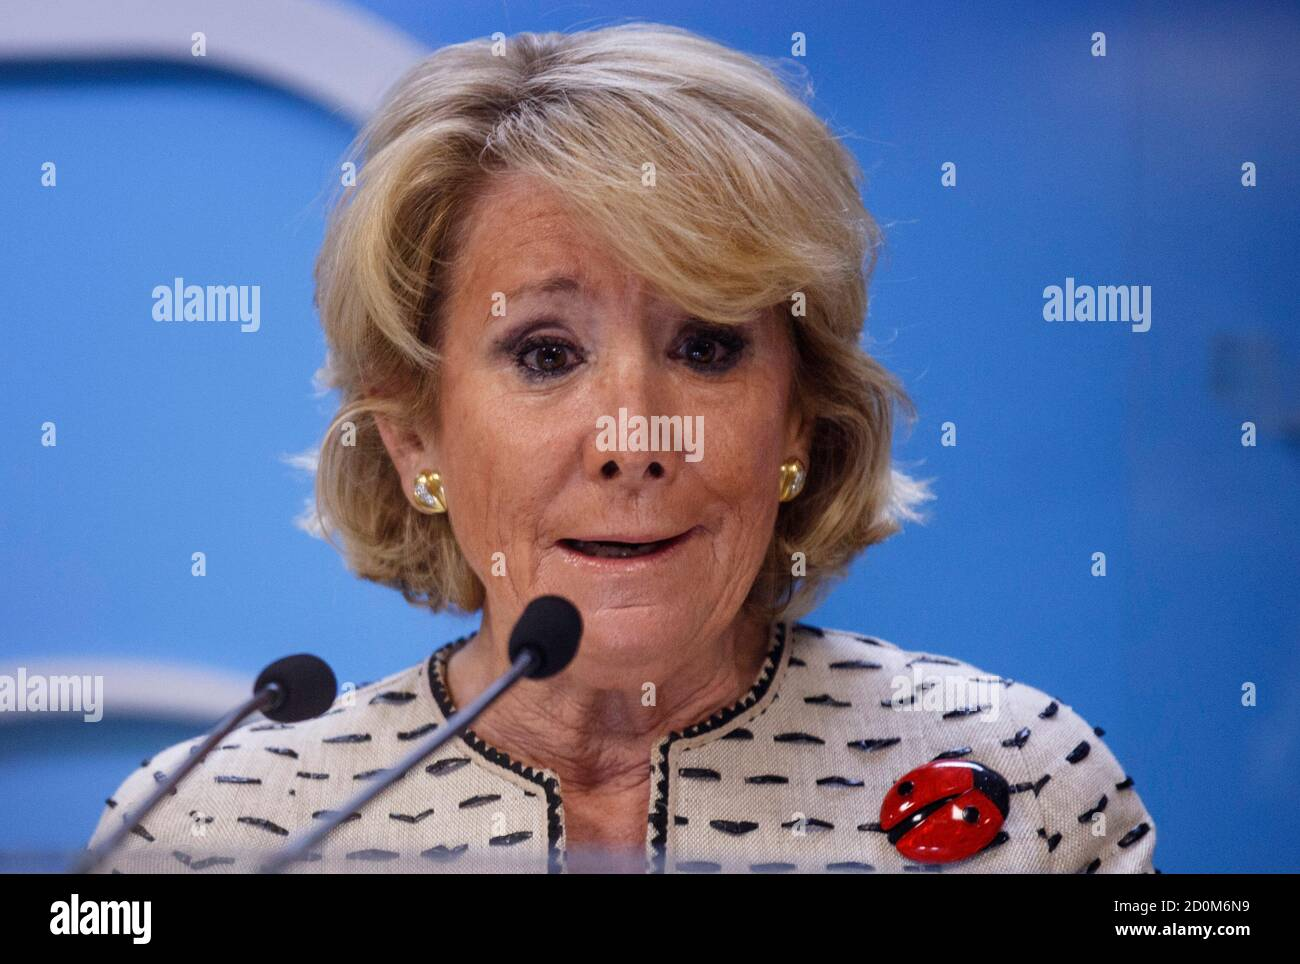 Esperanza Aguirre, former Madrid regional president and current president of the Madrid branch of the conservative Popular Party,  speaks during a news conference in Madrid, April 8, 2014. Aguirre was fined by traffic police last Thursday for parking illegally in a bus lane in Madrid's Gran Via thoroughfare while withdrawing money from an ATM, and subsequently fleeing the scene and knocking over a police motorcycle while an officer was issuing a ticket.  REUTERS/Andrea Comas (SPAIN - Tags: POLITICS CRIME LAW) Stock Photo